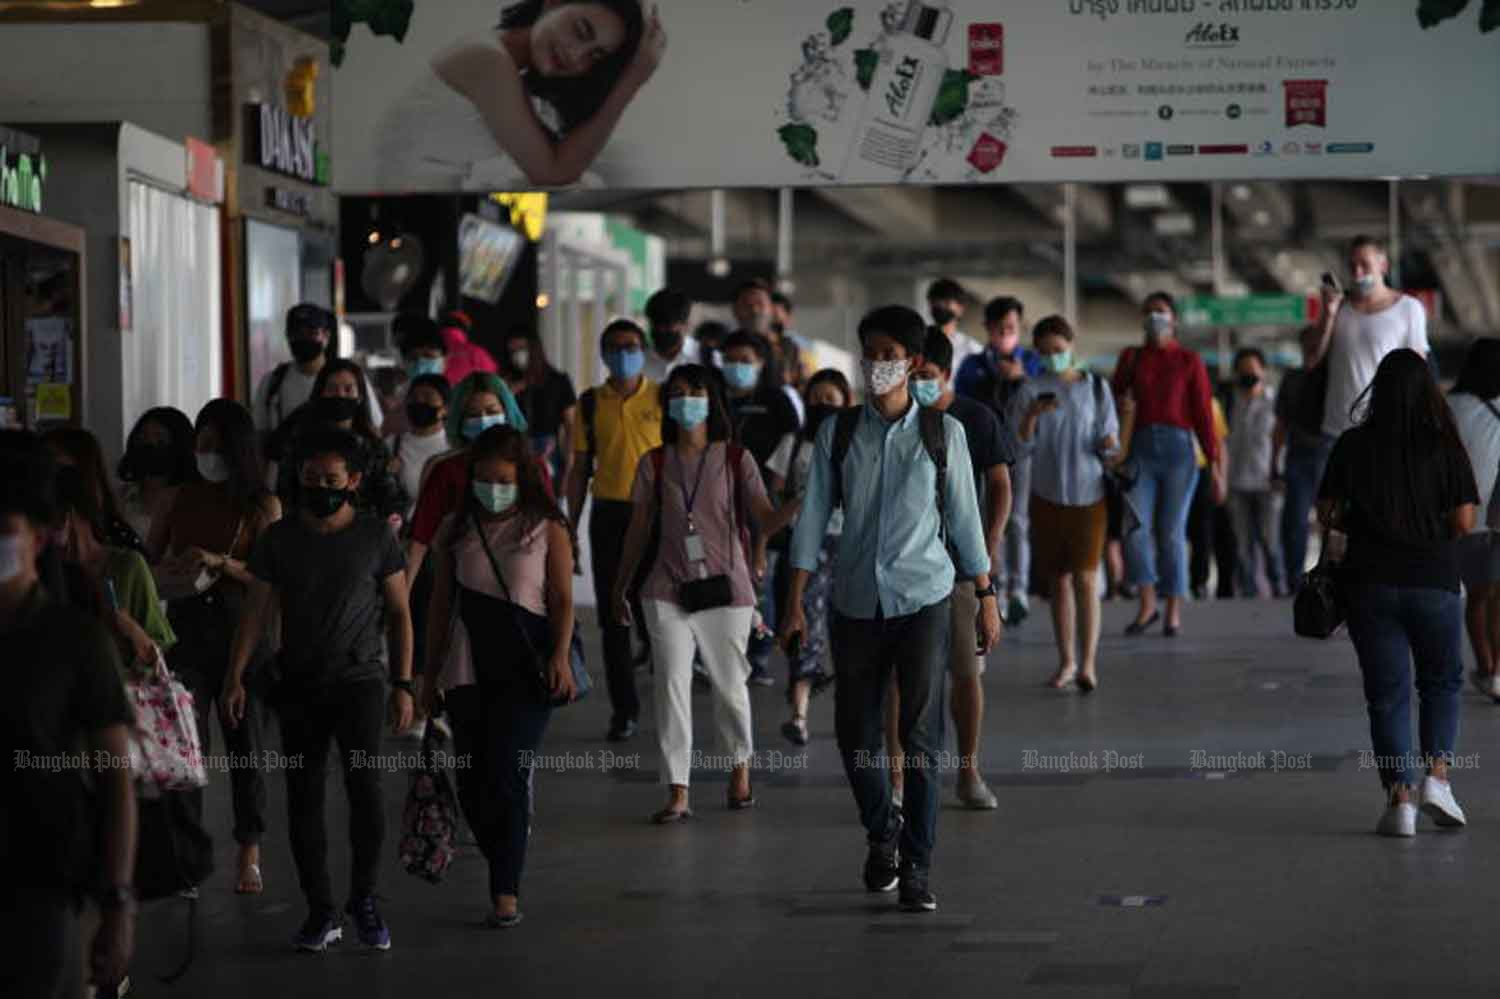 Commuters wear face masks at Phaya Thai train station in Bangkok on Friday, when the government announced no new Covid-19 cases. (Photo: Apichart Jinakul)